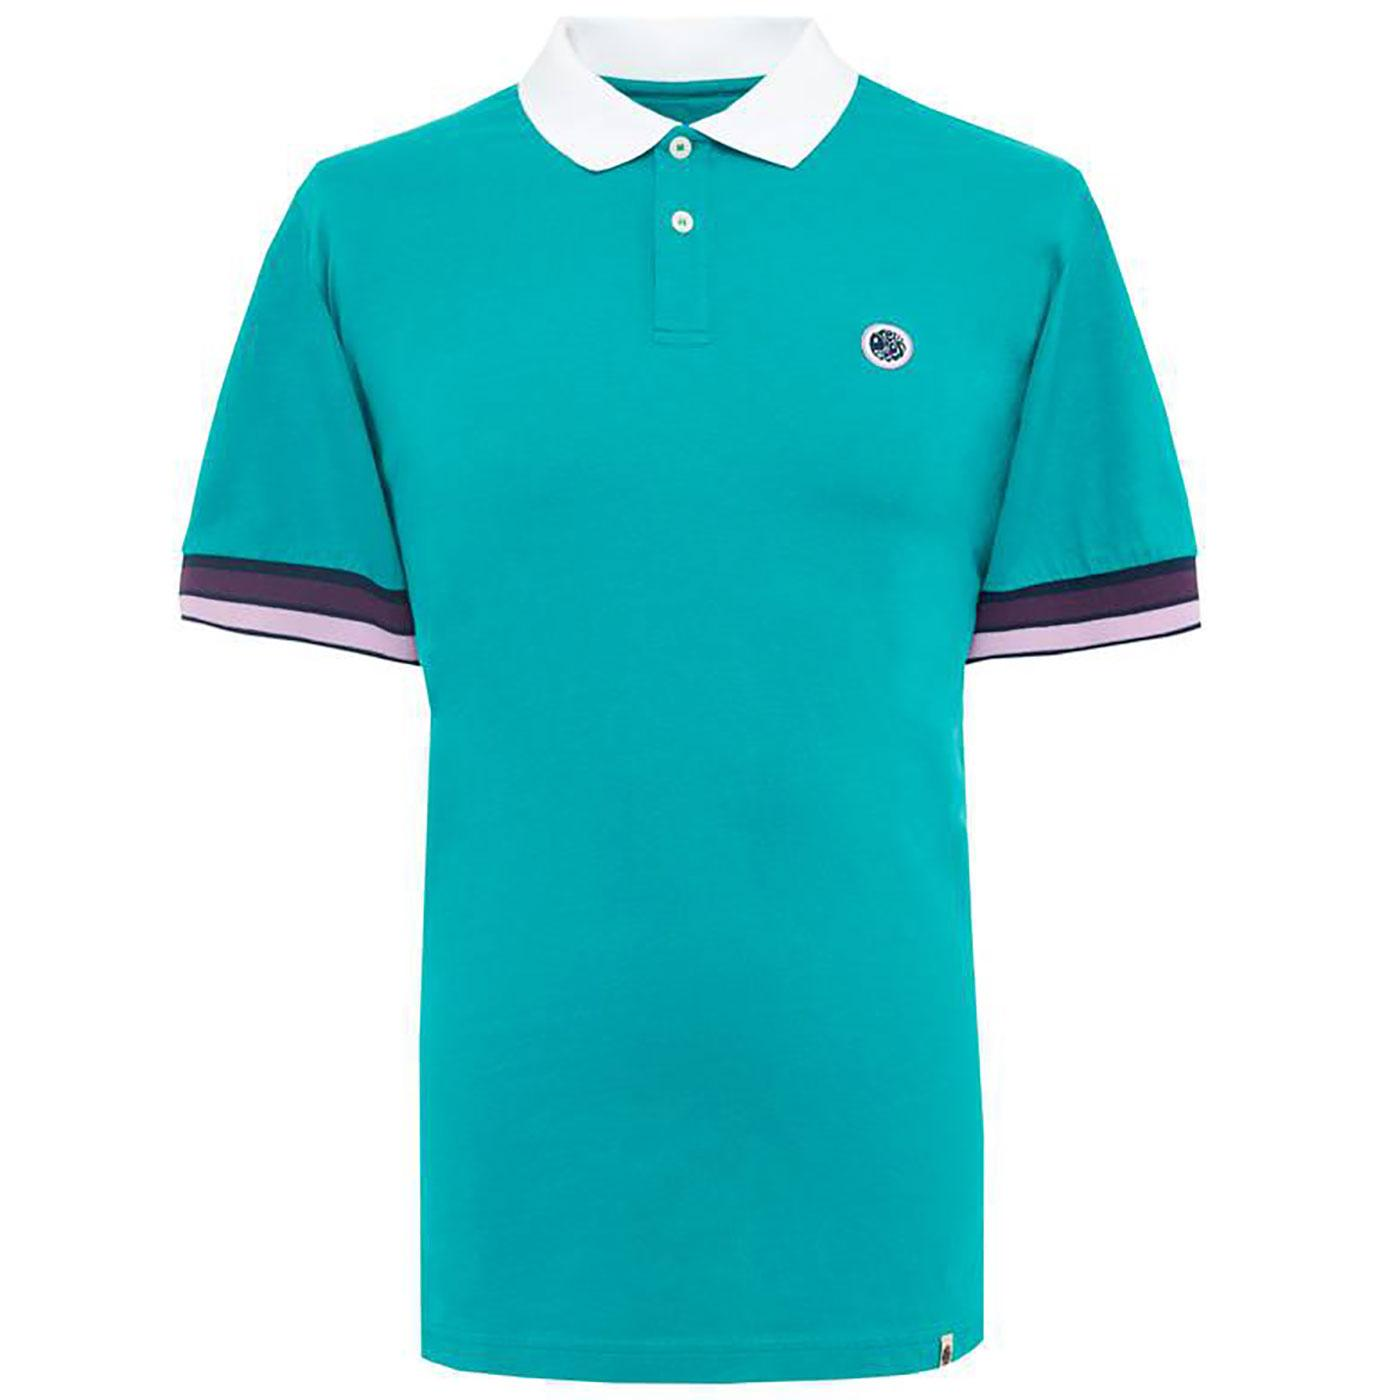 PRETTY GREEN Retro Contrast Stripe Cuff Polo Shirt